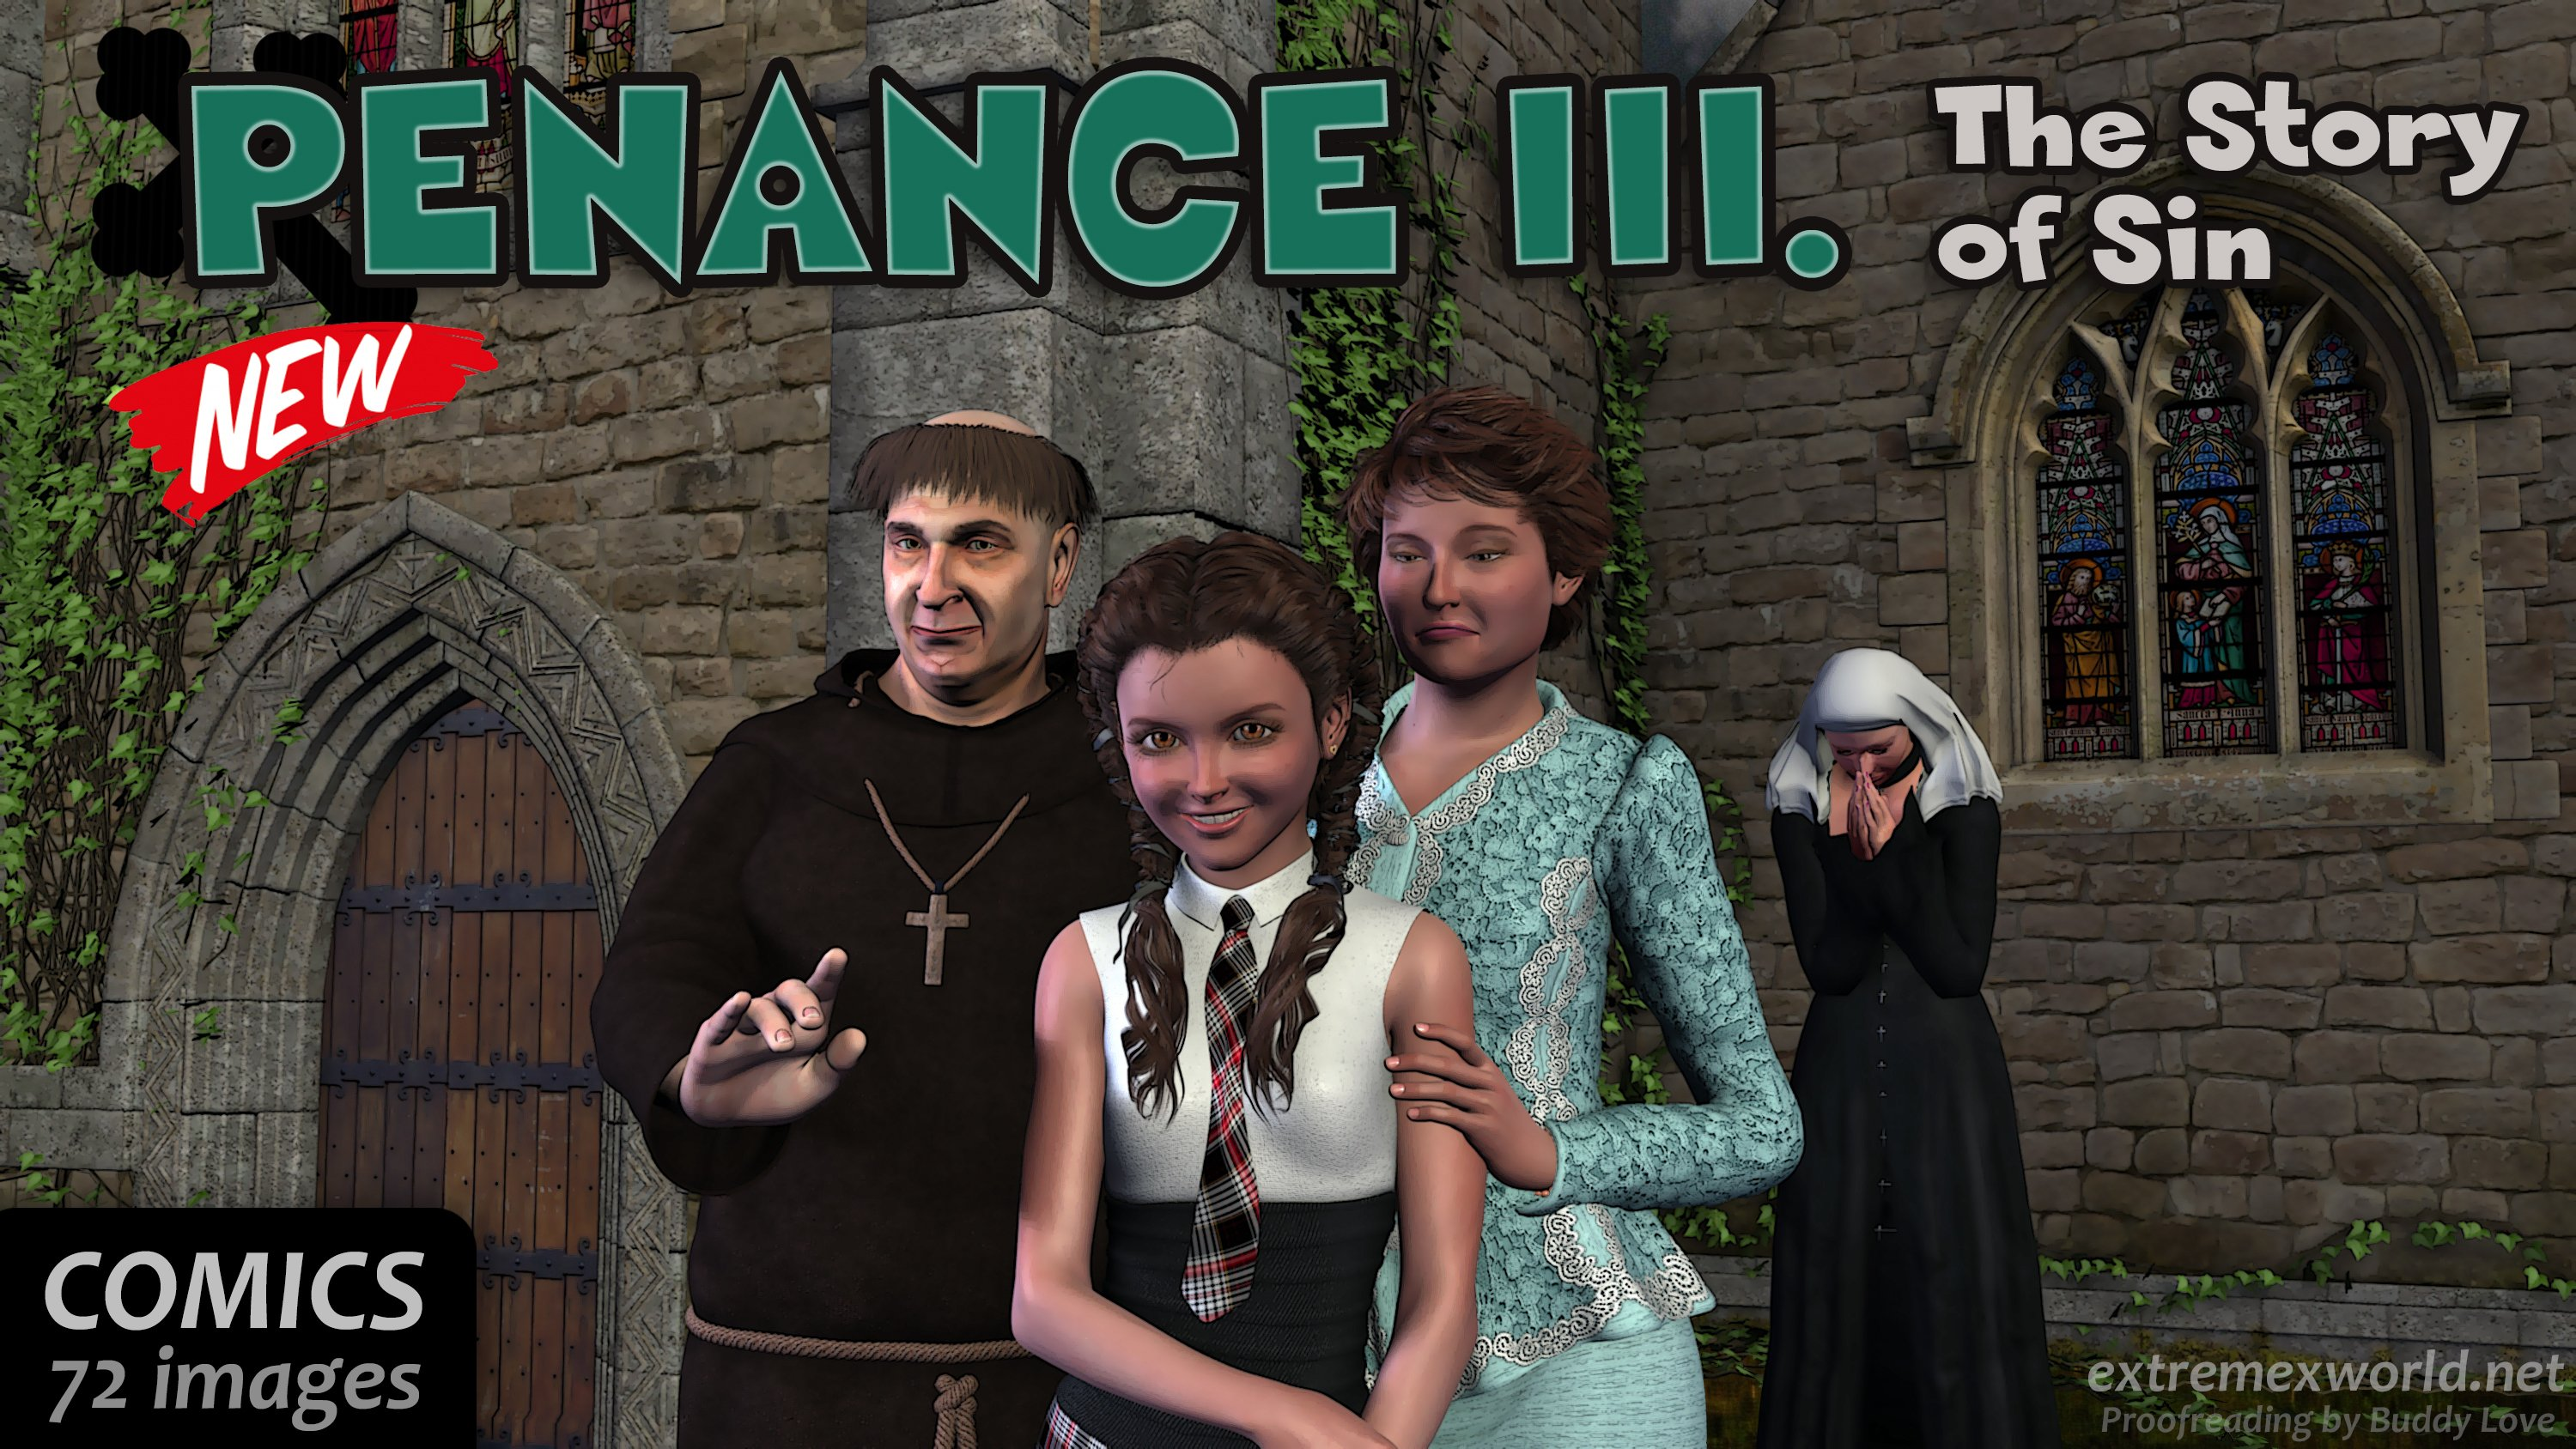 Penance.The.Story.of.Sin.3 (1/74)